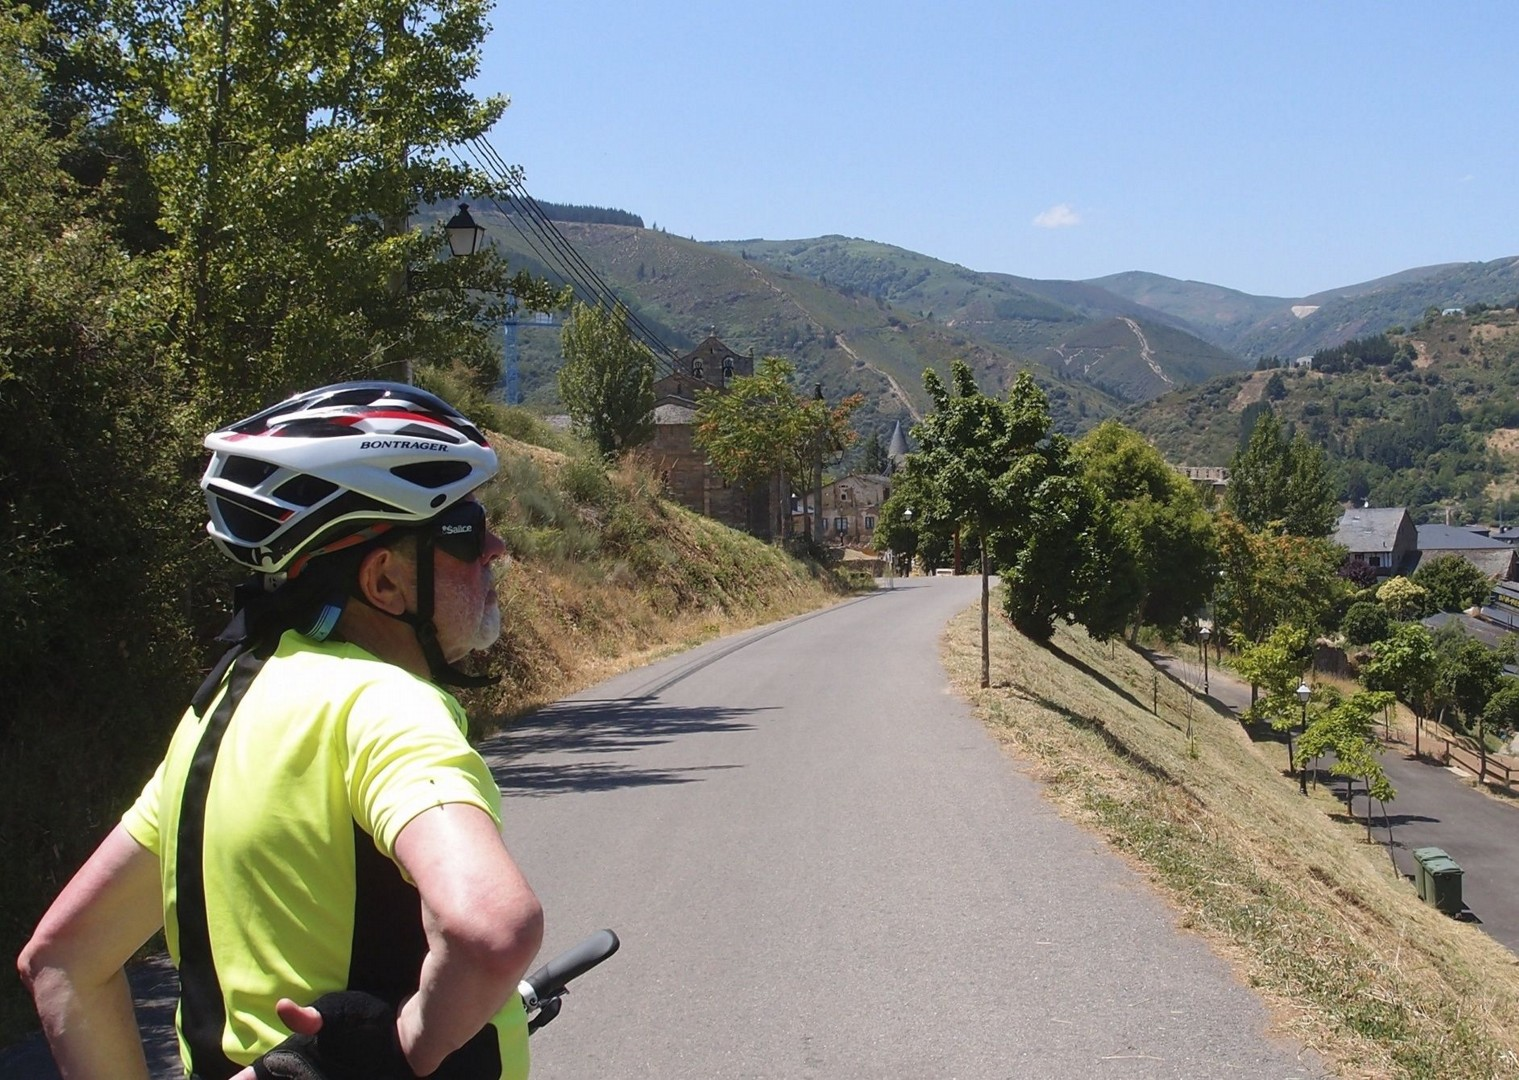 Caminodesantiago10.jpg - Northern Spain - Camino de Santiago - Guided Leisure Cycling Holiday - Leisure Cycling